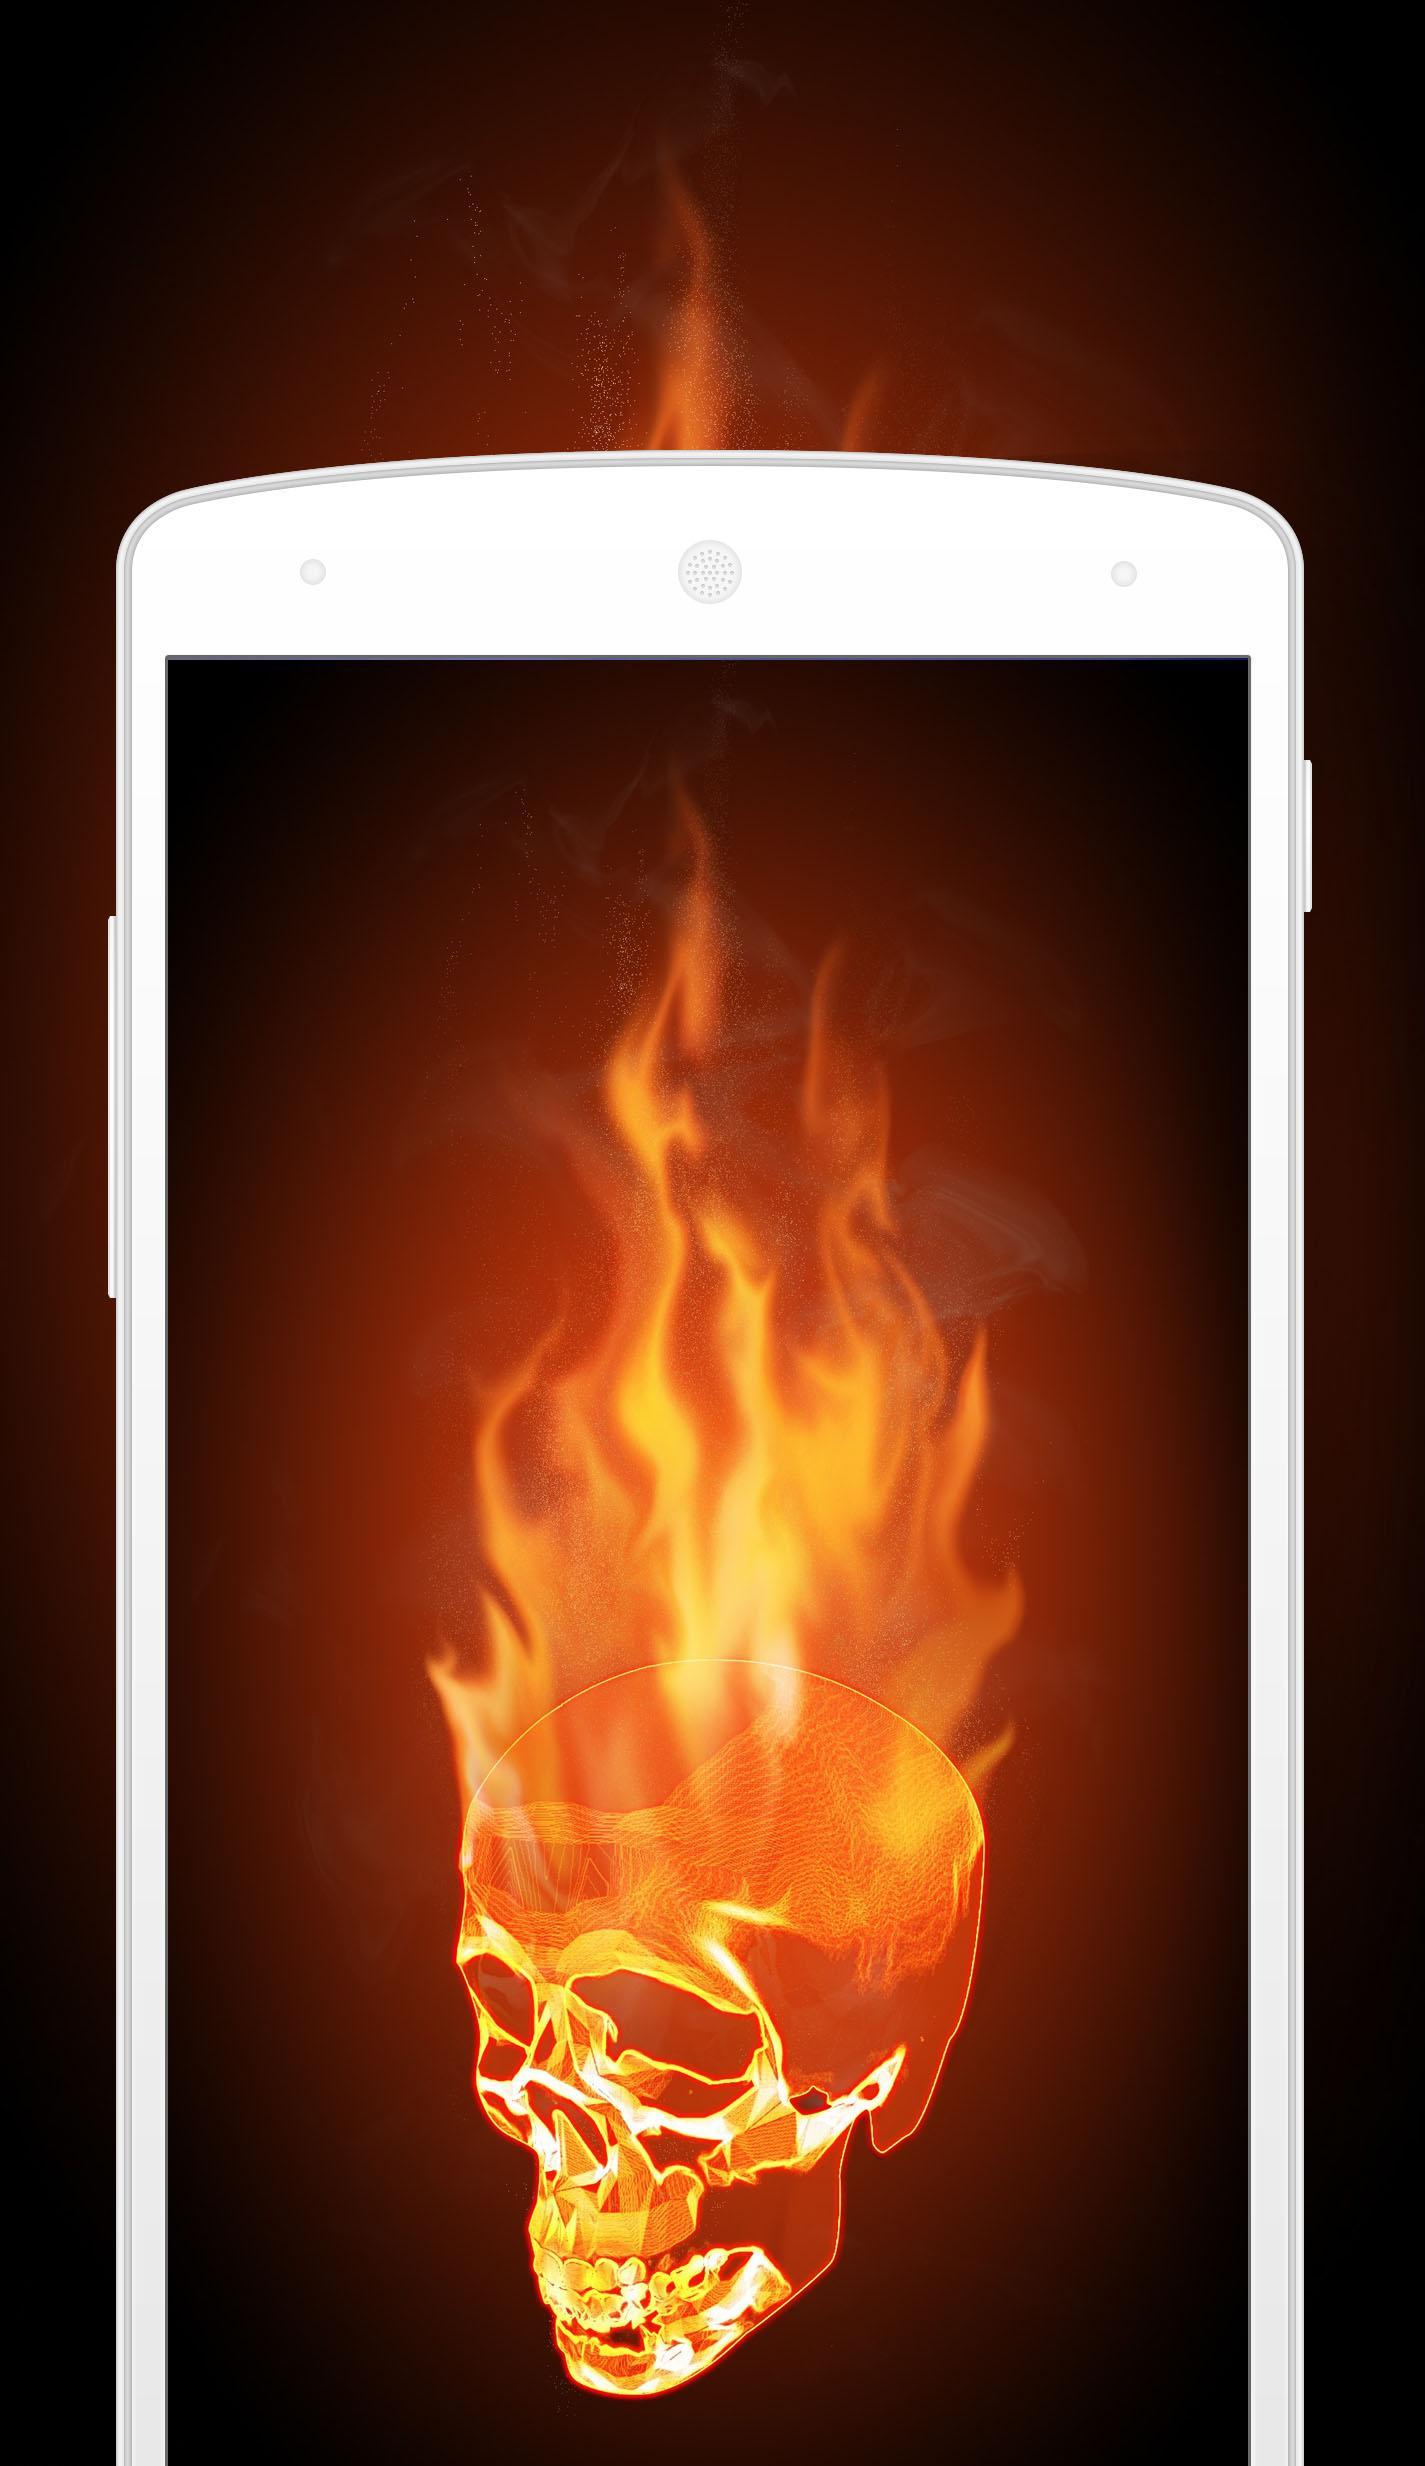 Fire Wallpapers For Android Apk Download